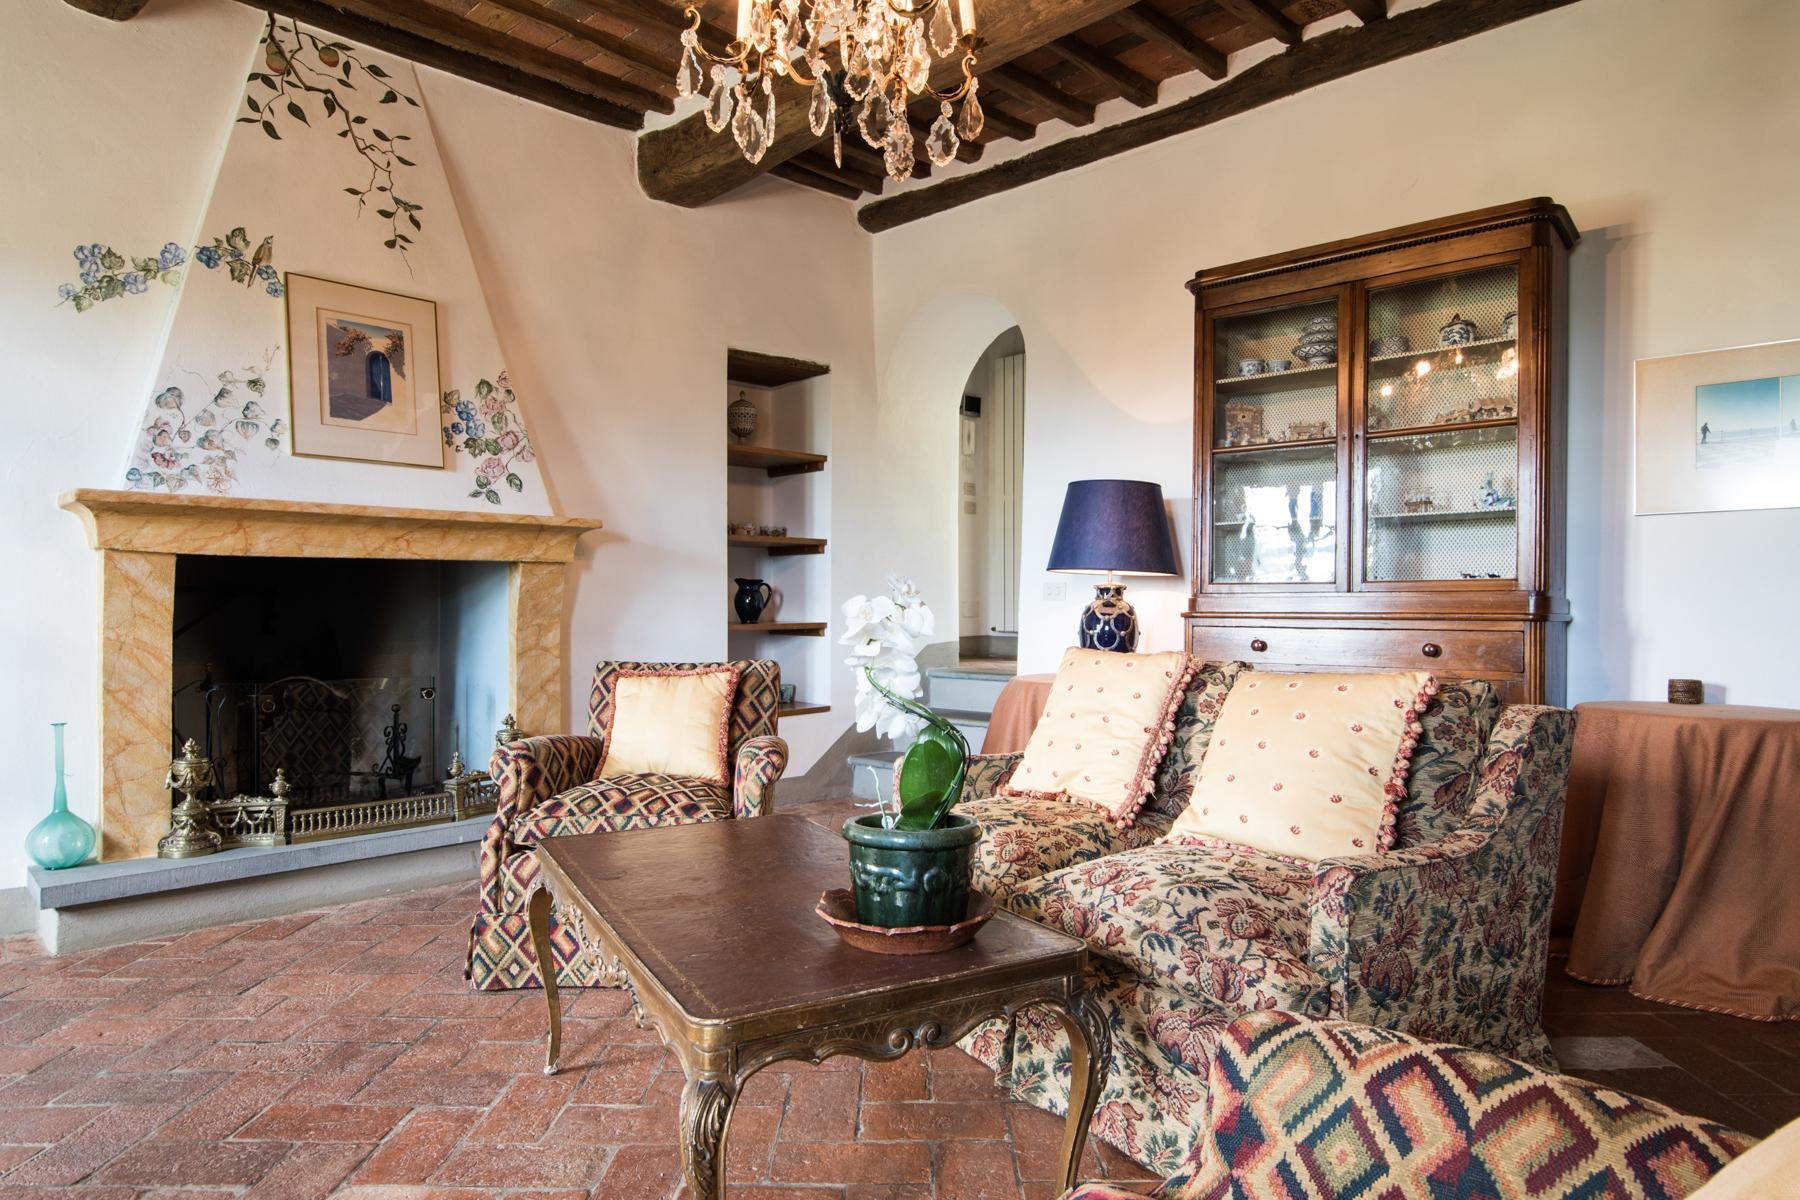 Marvelous villa in the countryside of Lucca - 19